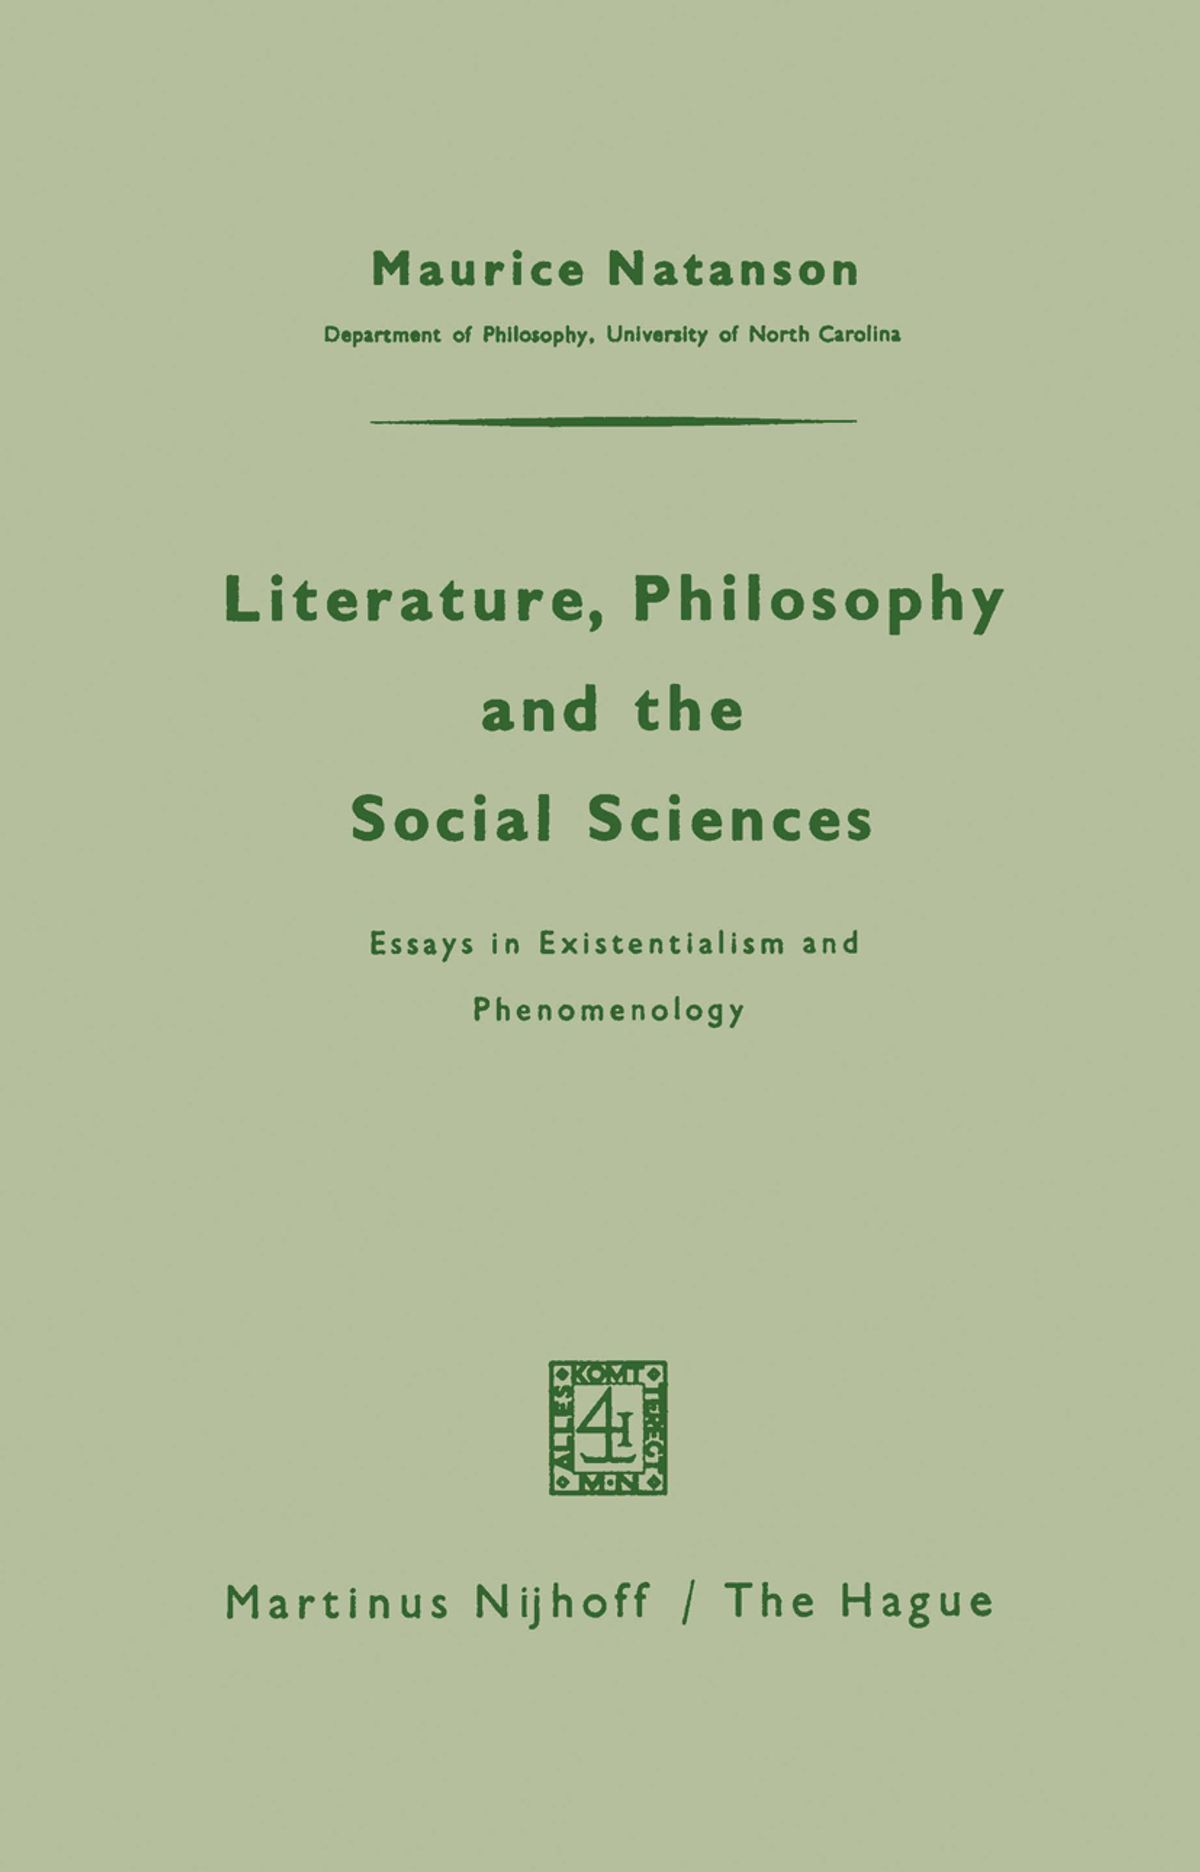 009 Literature Philosophy And The Social Sciences Essay Example Essays In Outstanding Existentialism Ao3 Jean Paul Sartre Pdf Full